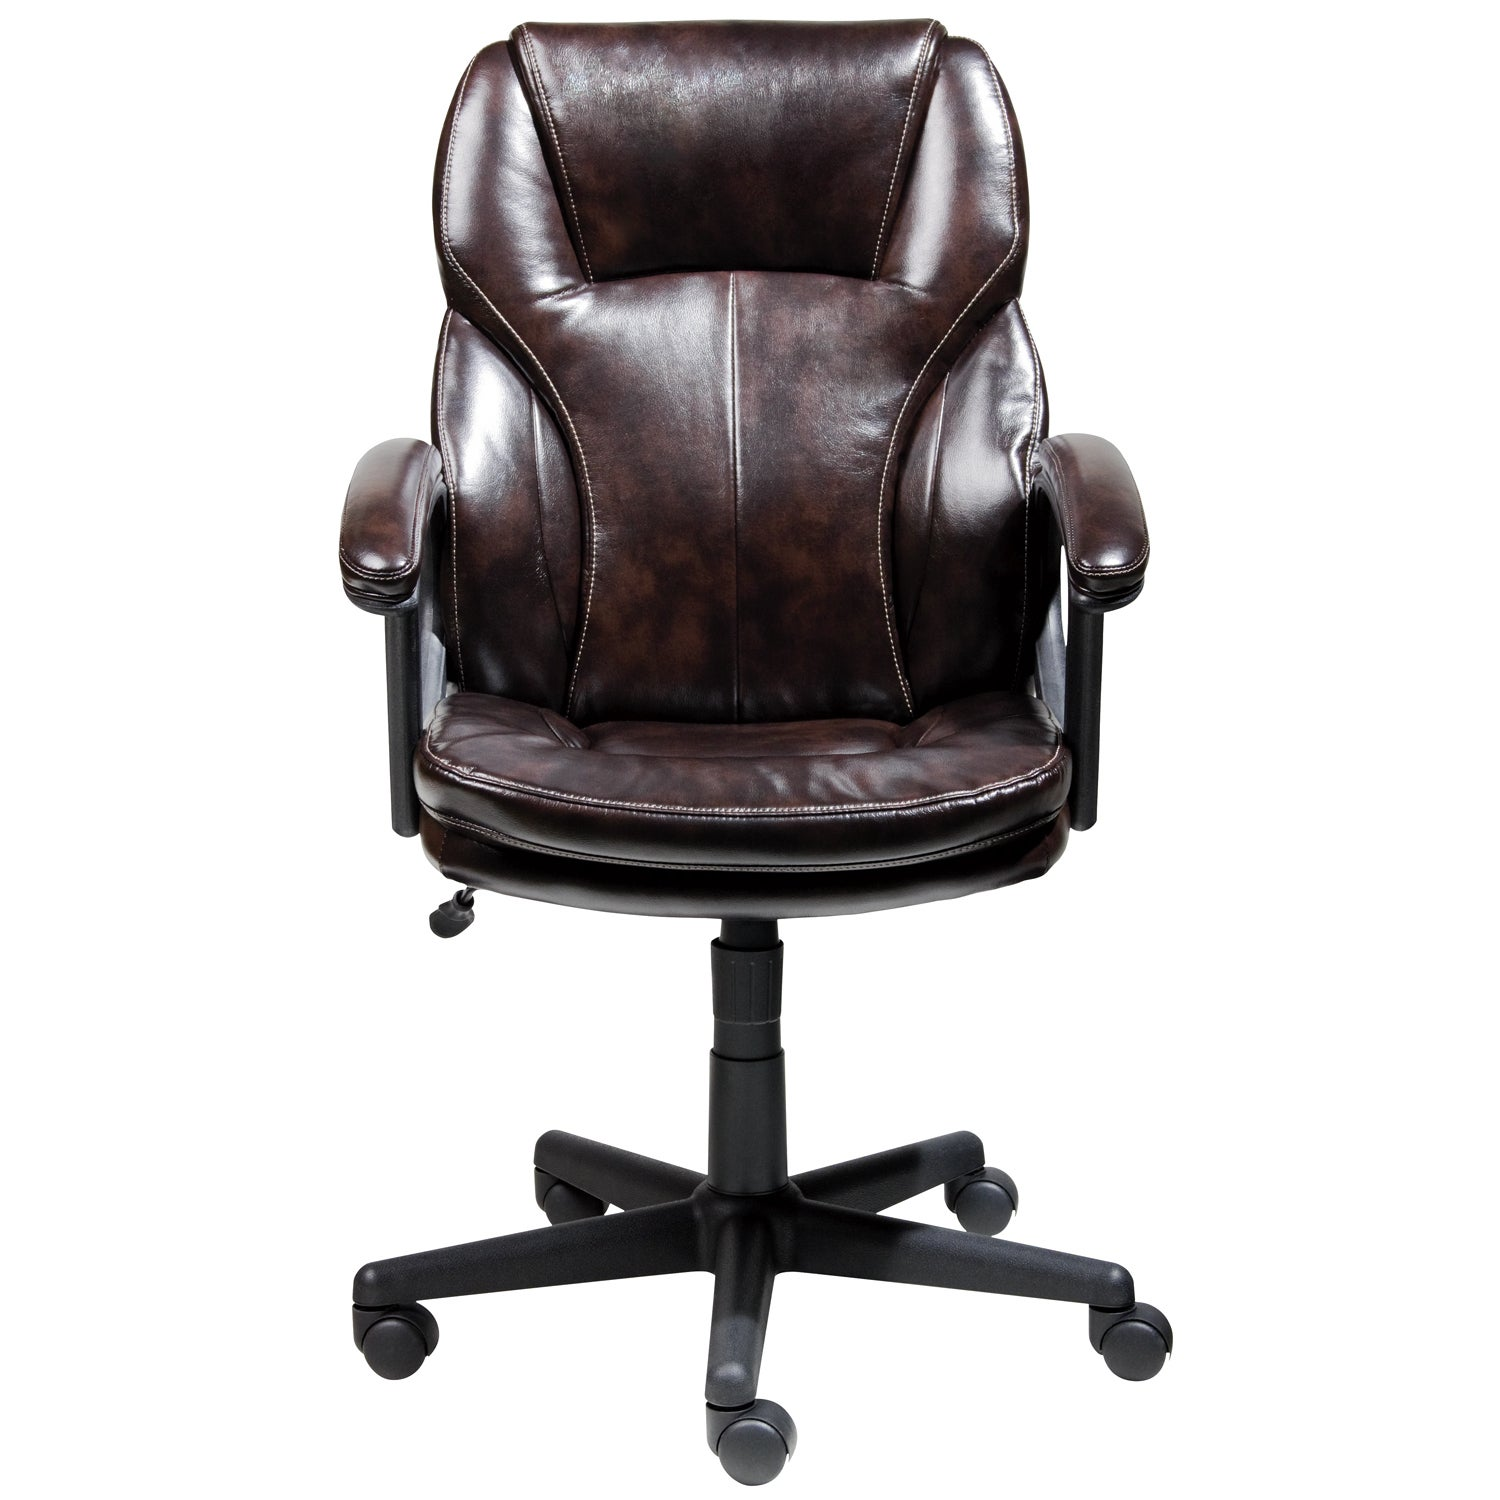 Serta Roasted Chestnut Brown Puresoft Faux Leather Managers Office Chair    Free Shipping Today   Overstock.com   16260147